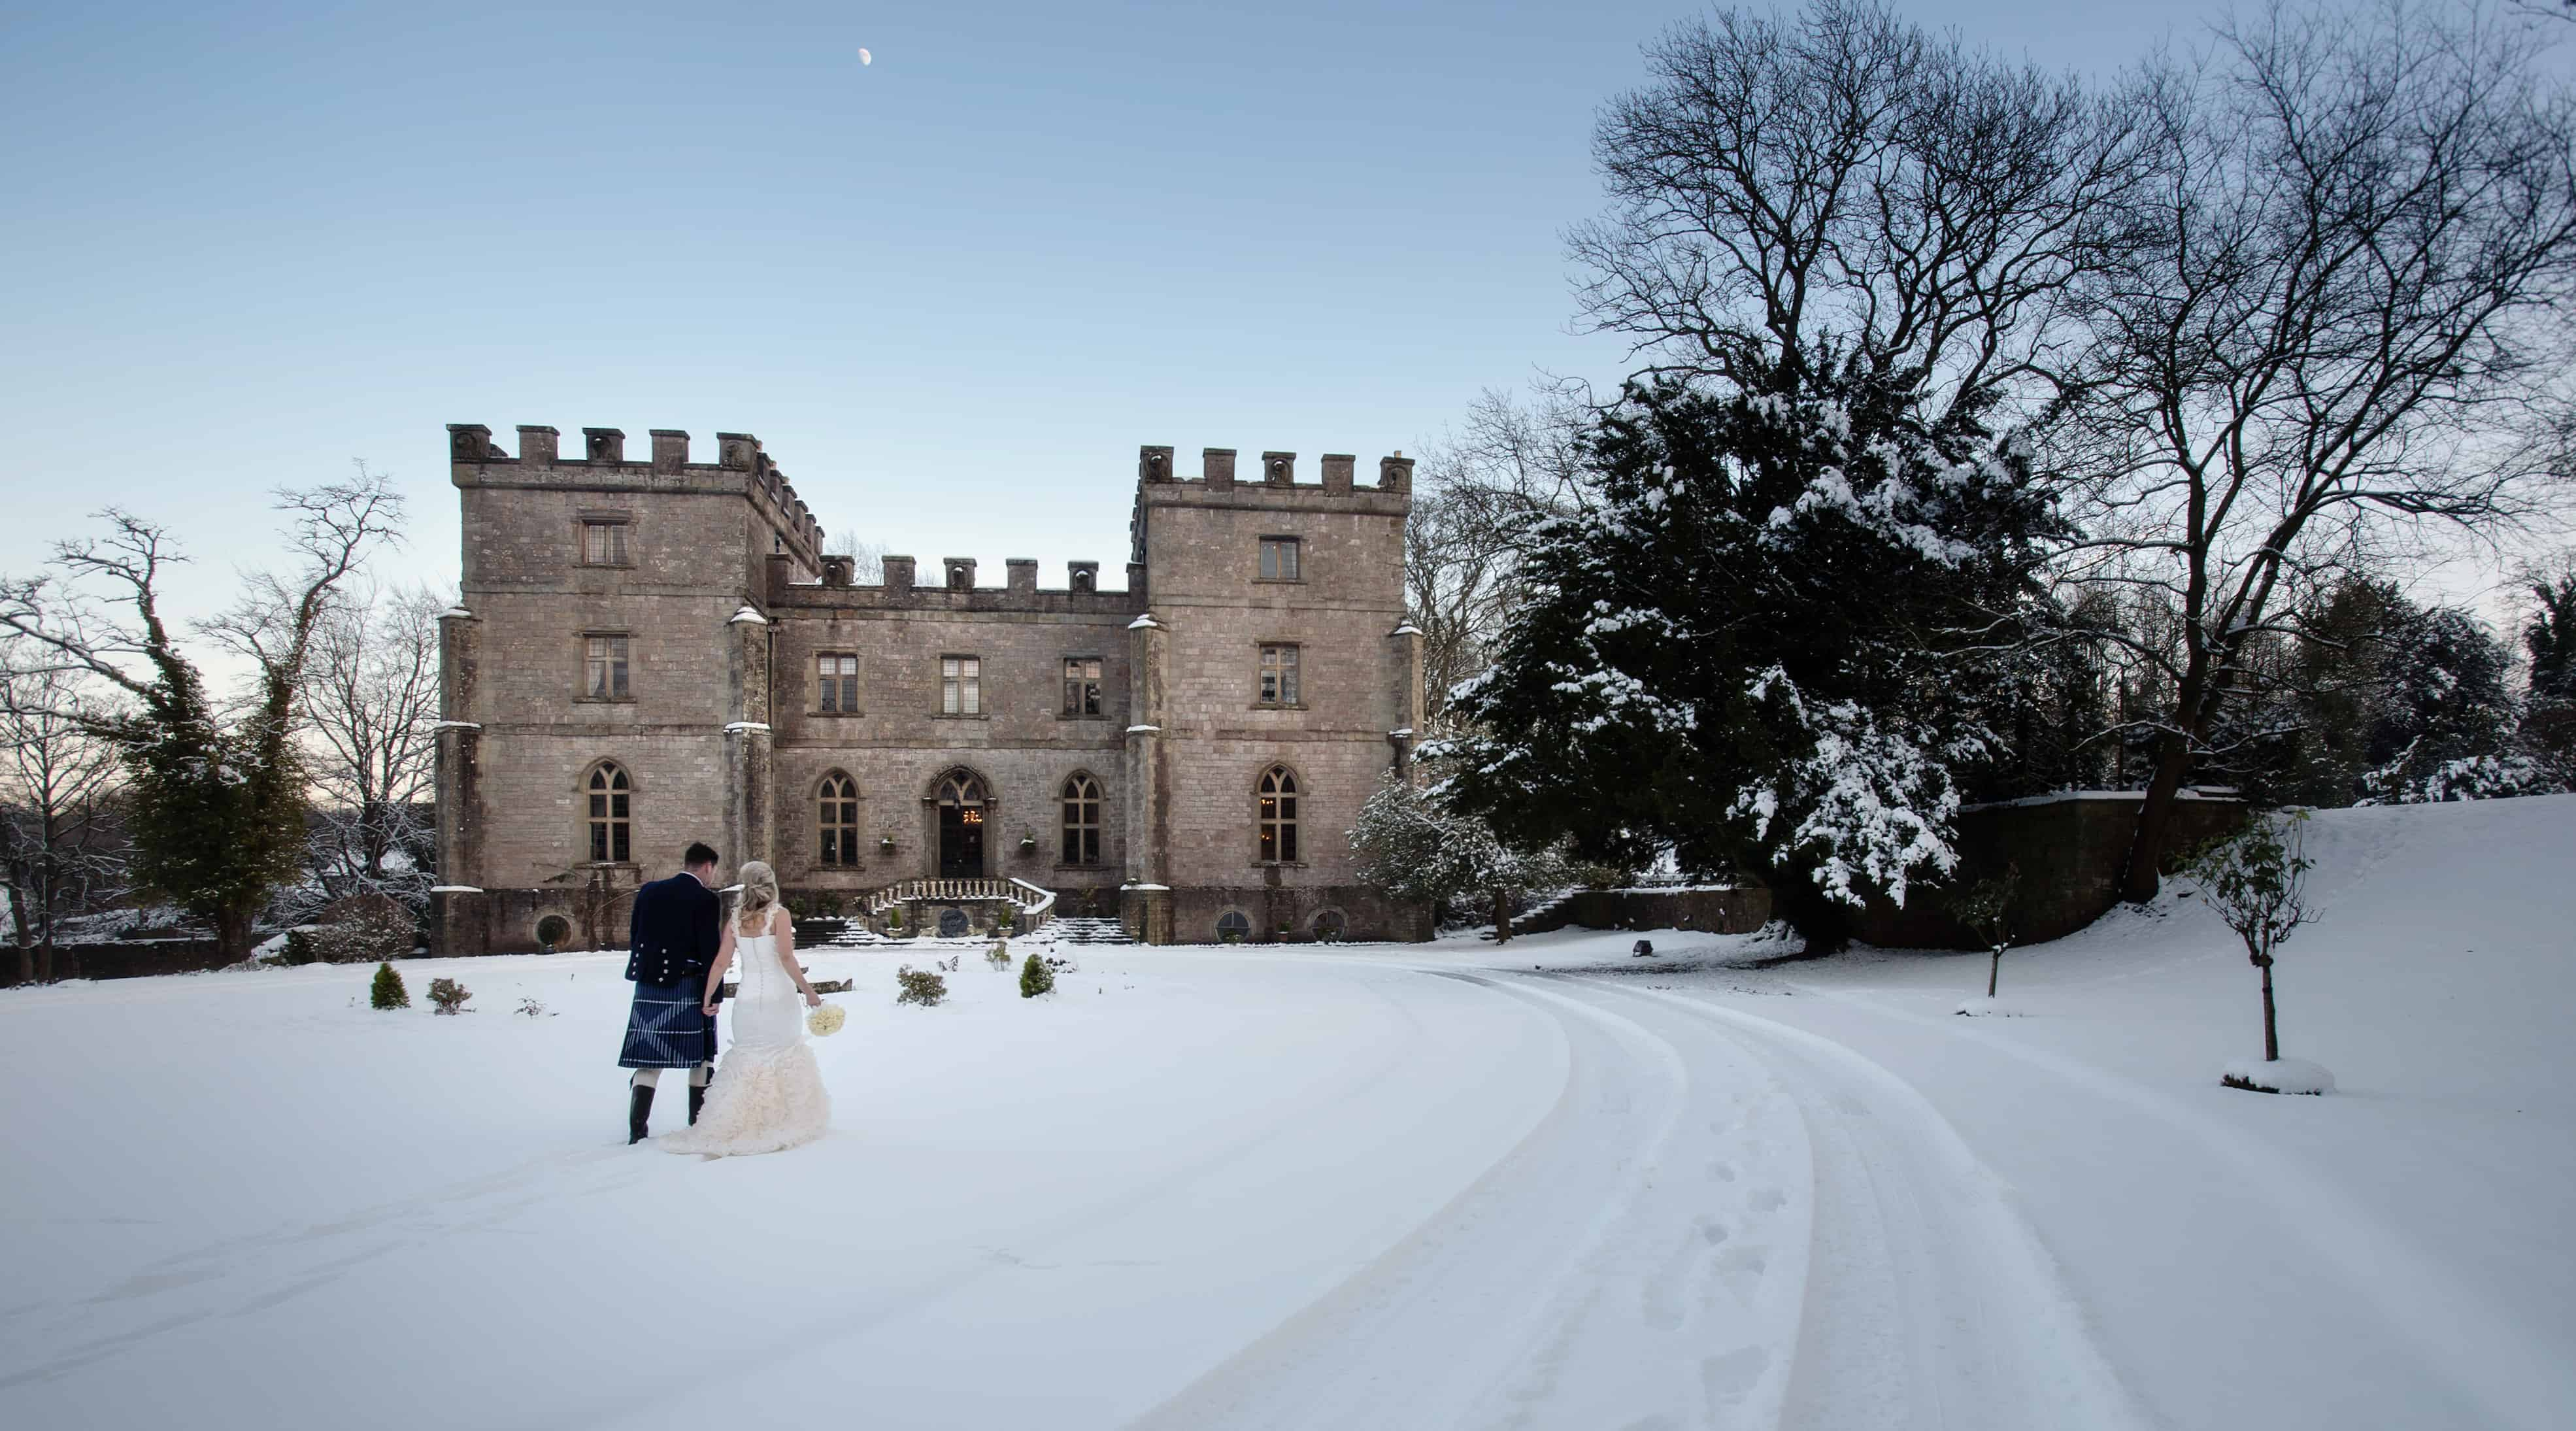 Clearwell Castle - Snow